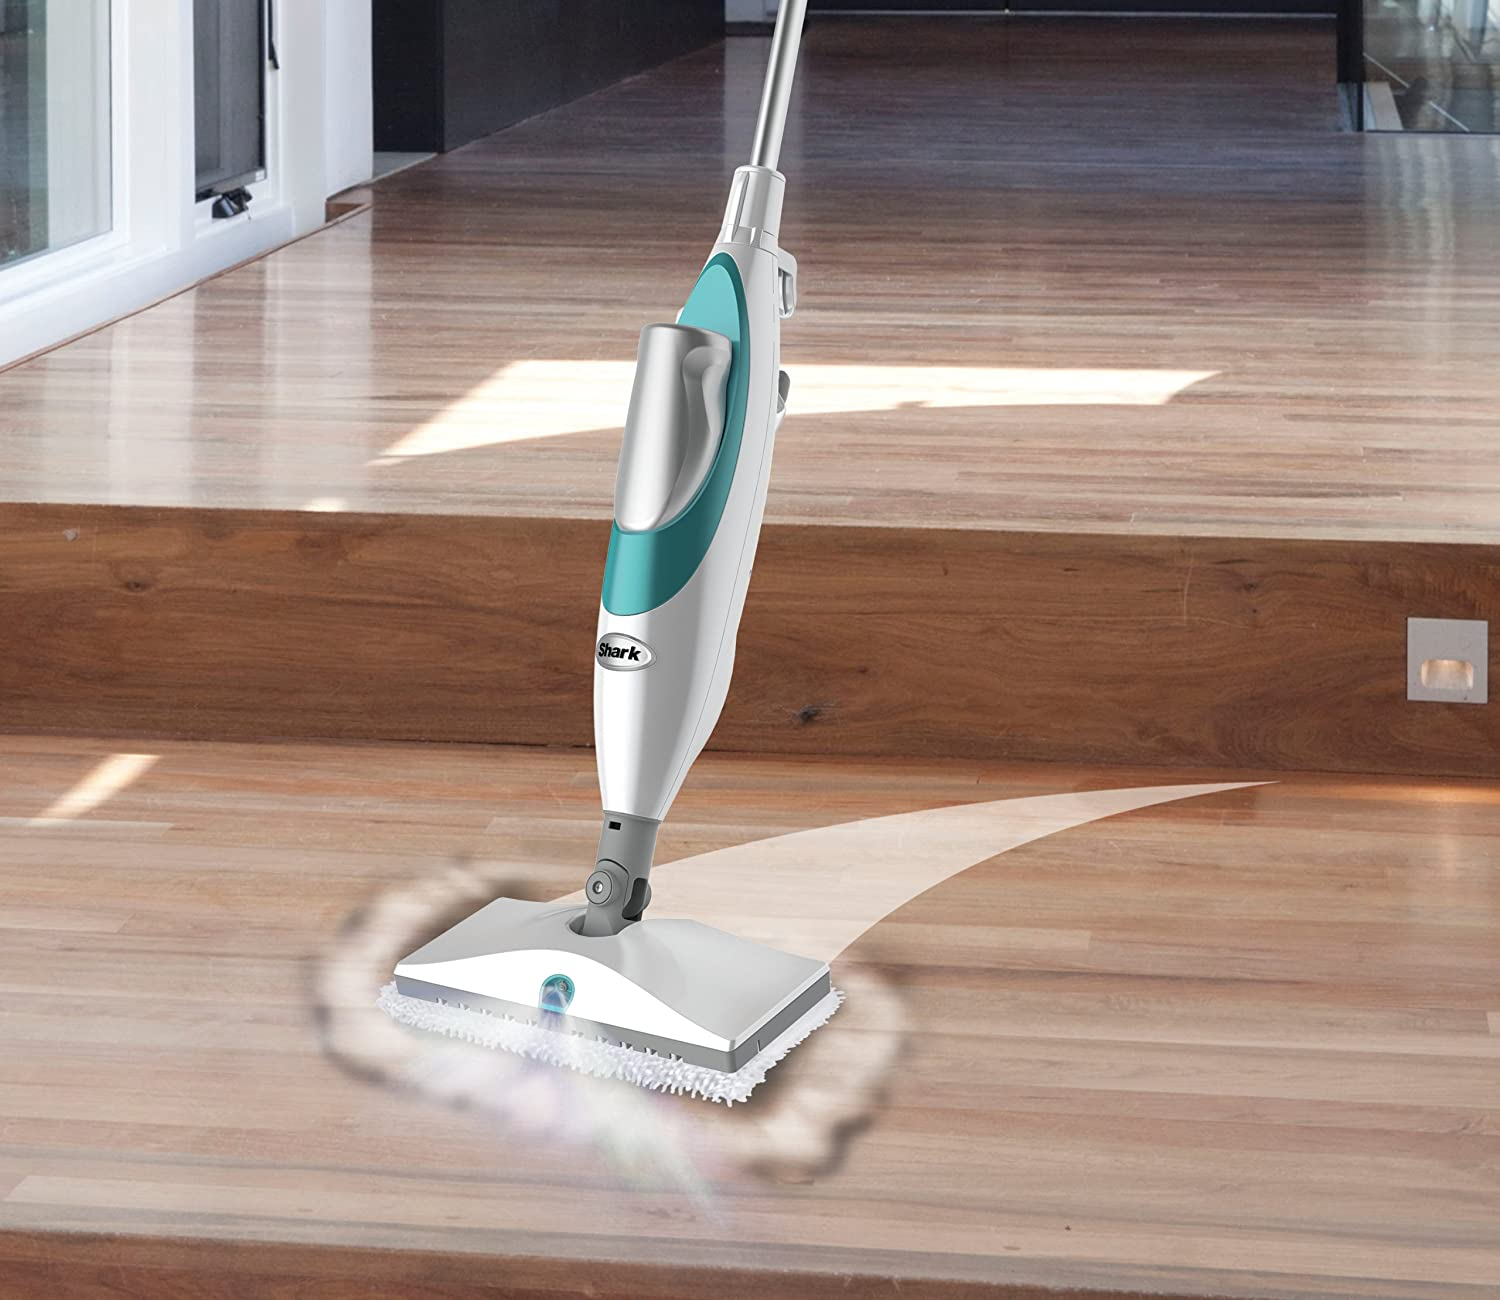 Shark steam pocket mop reviews hardwood floors thefloors co for Wood floor steam cleaner